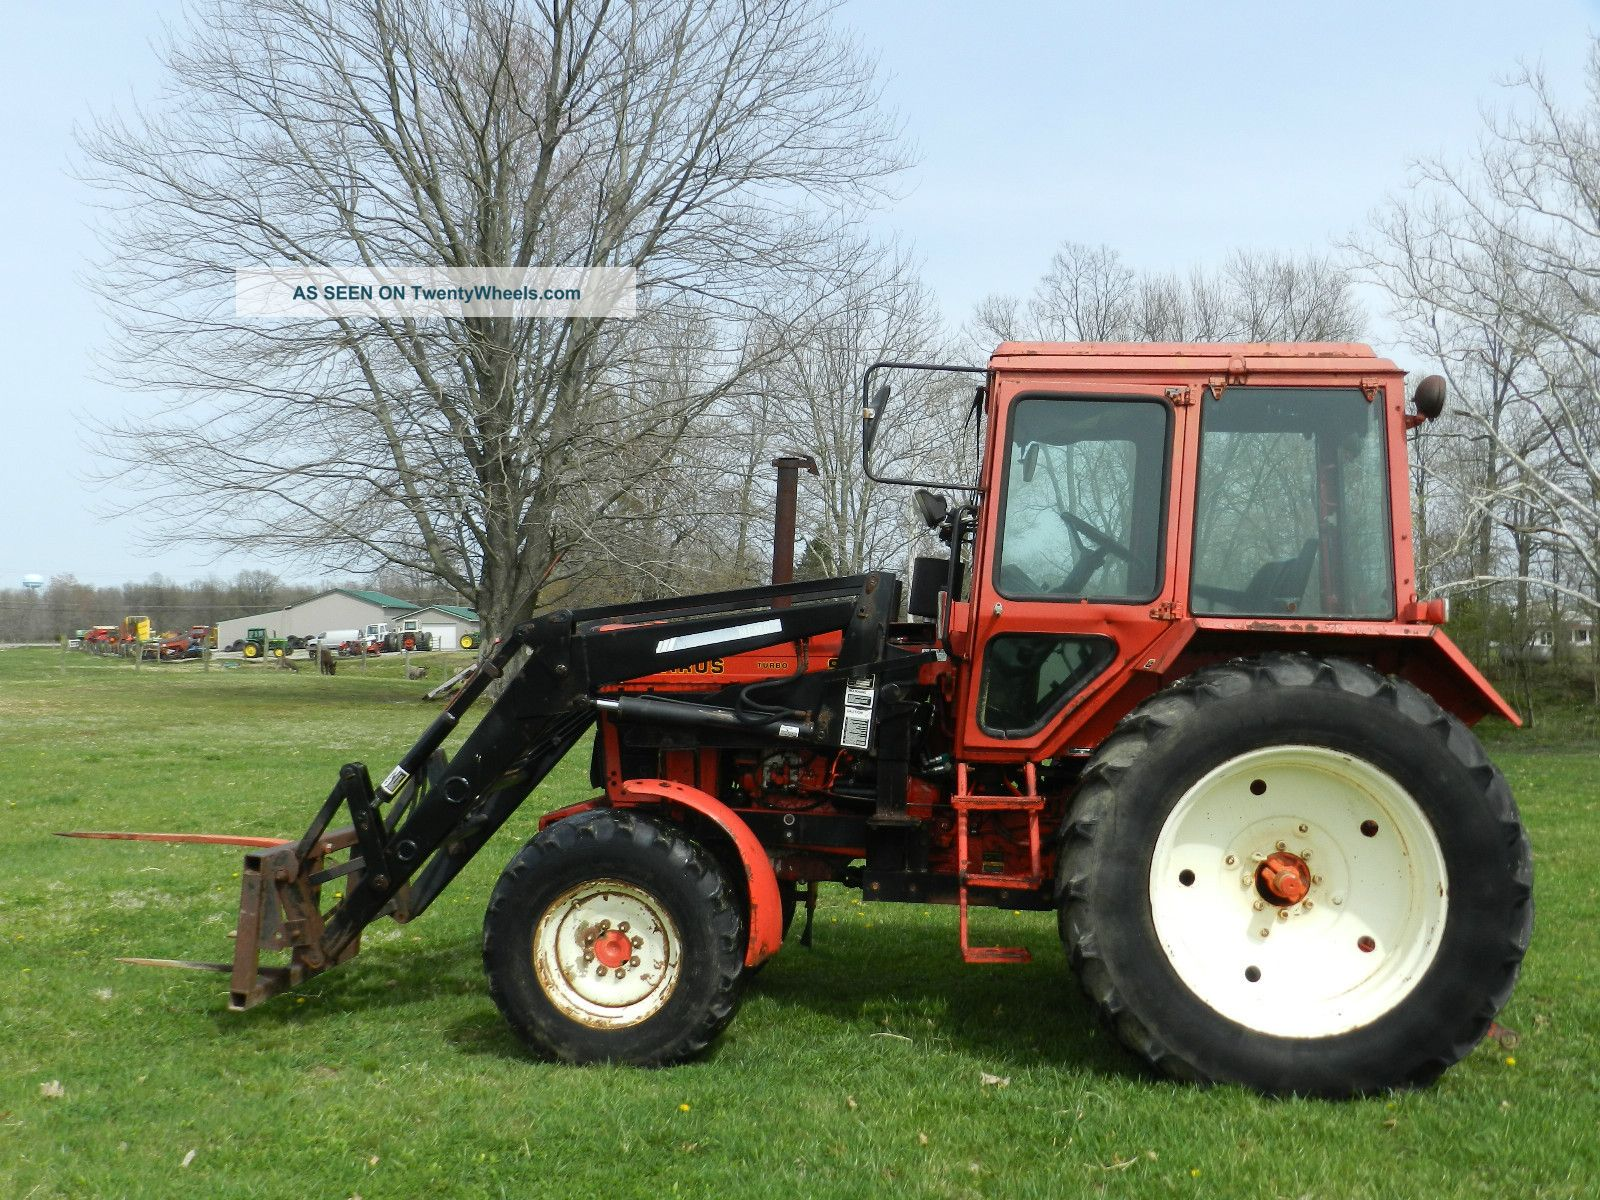 4697 Belarus 925 tractor with cab  front loader   4x4   1537 hours additionally 1979 Cook Semi Bottom Dump Trailer 8595856 together with 26910 1957   1958 farmall cub tractor with woods belly mower moreover Wilson Belly Dump Tag Axle 50 Grain V1 0 Fs17 as well Trailer Wiring Diagrams. on belly dump semi trailers